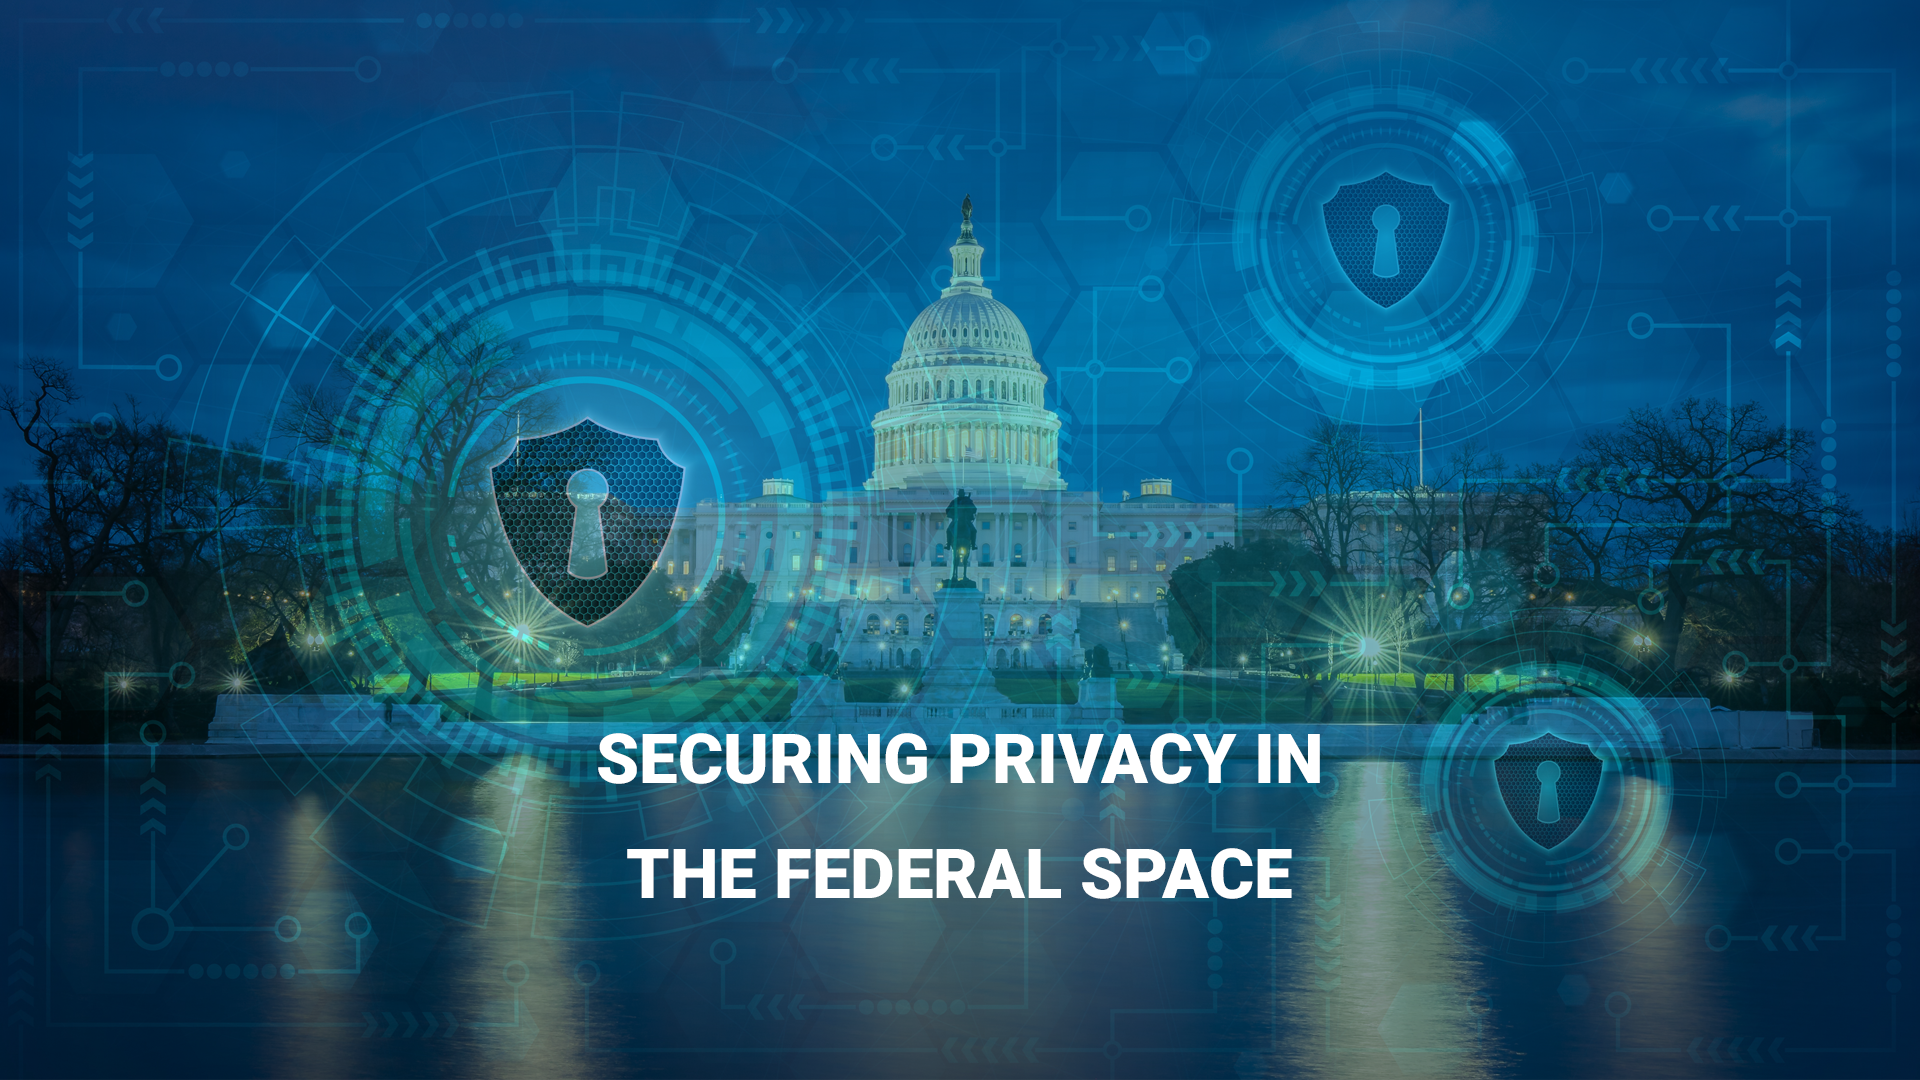 Securing Privacy in the Federal Space